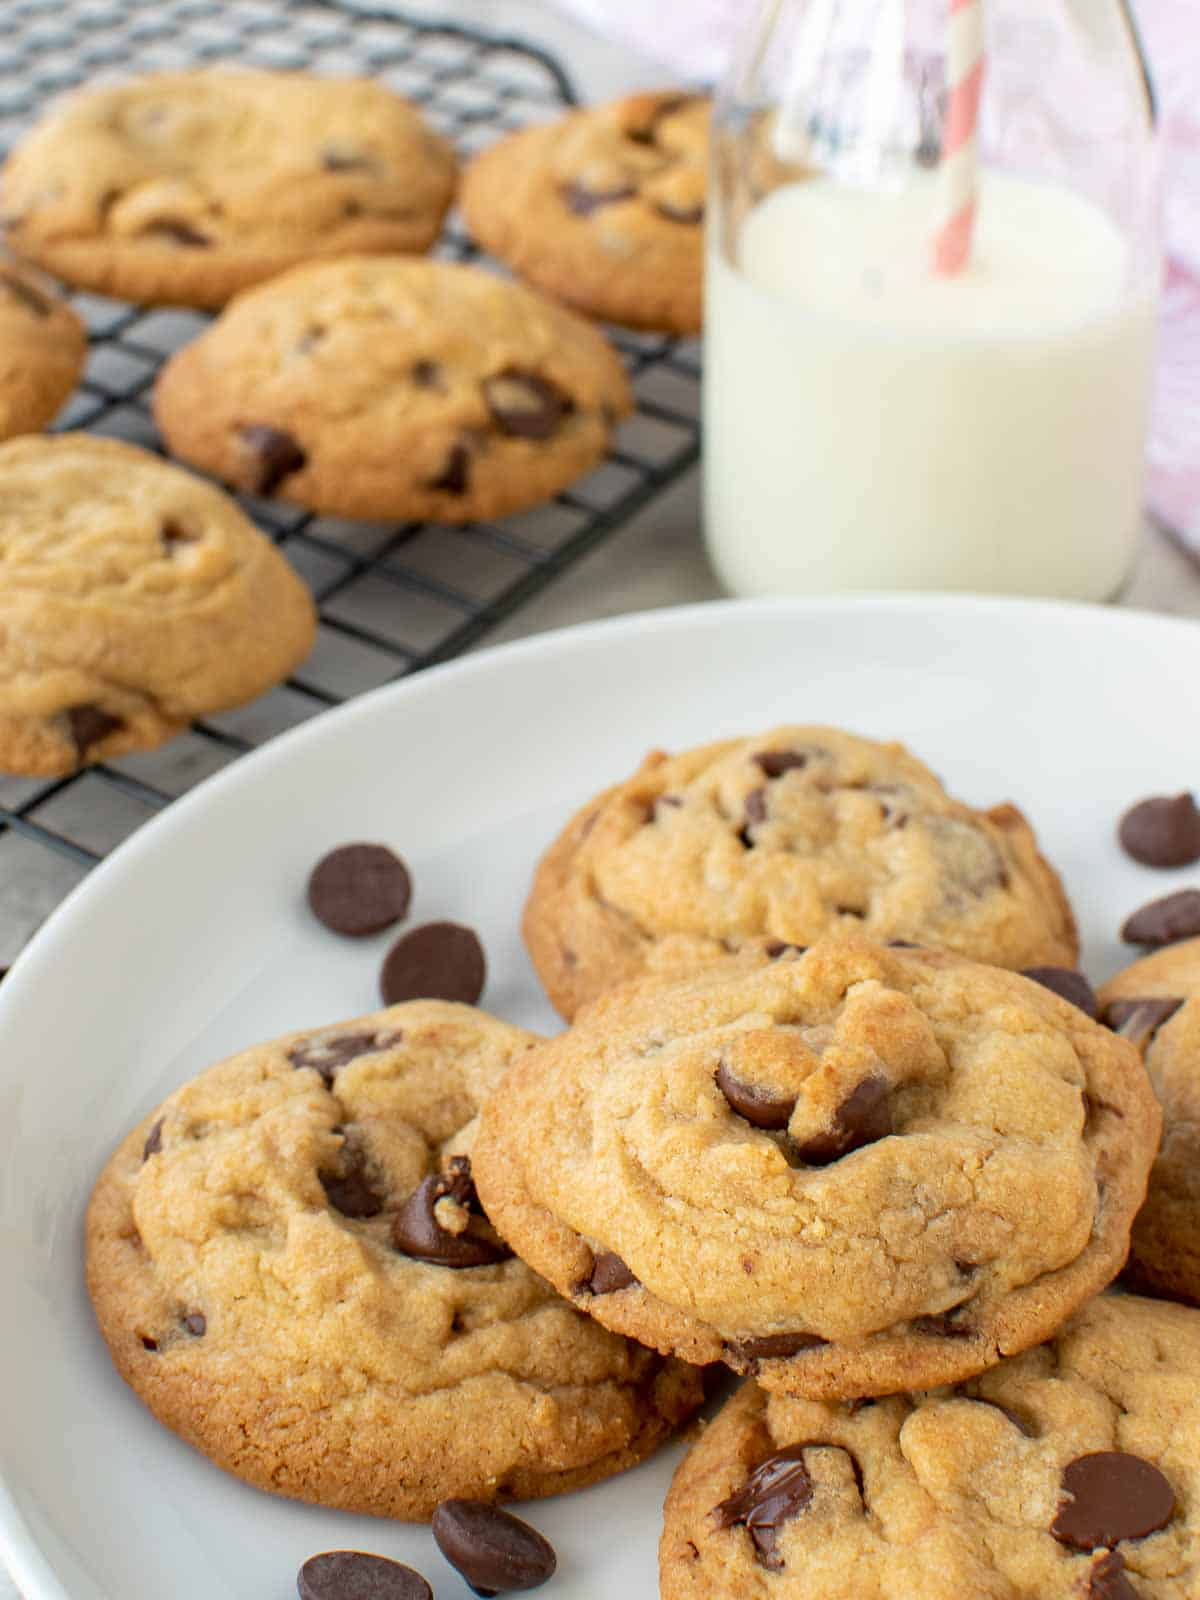 chocolate chip cookies on a white plate with bottle of milk in the background and more cookies on wire rack.